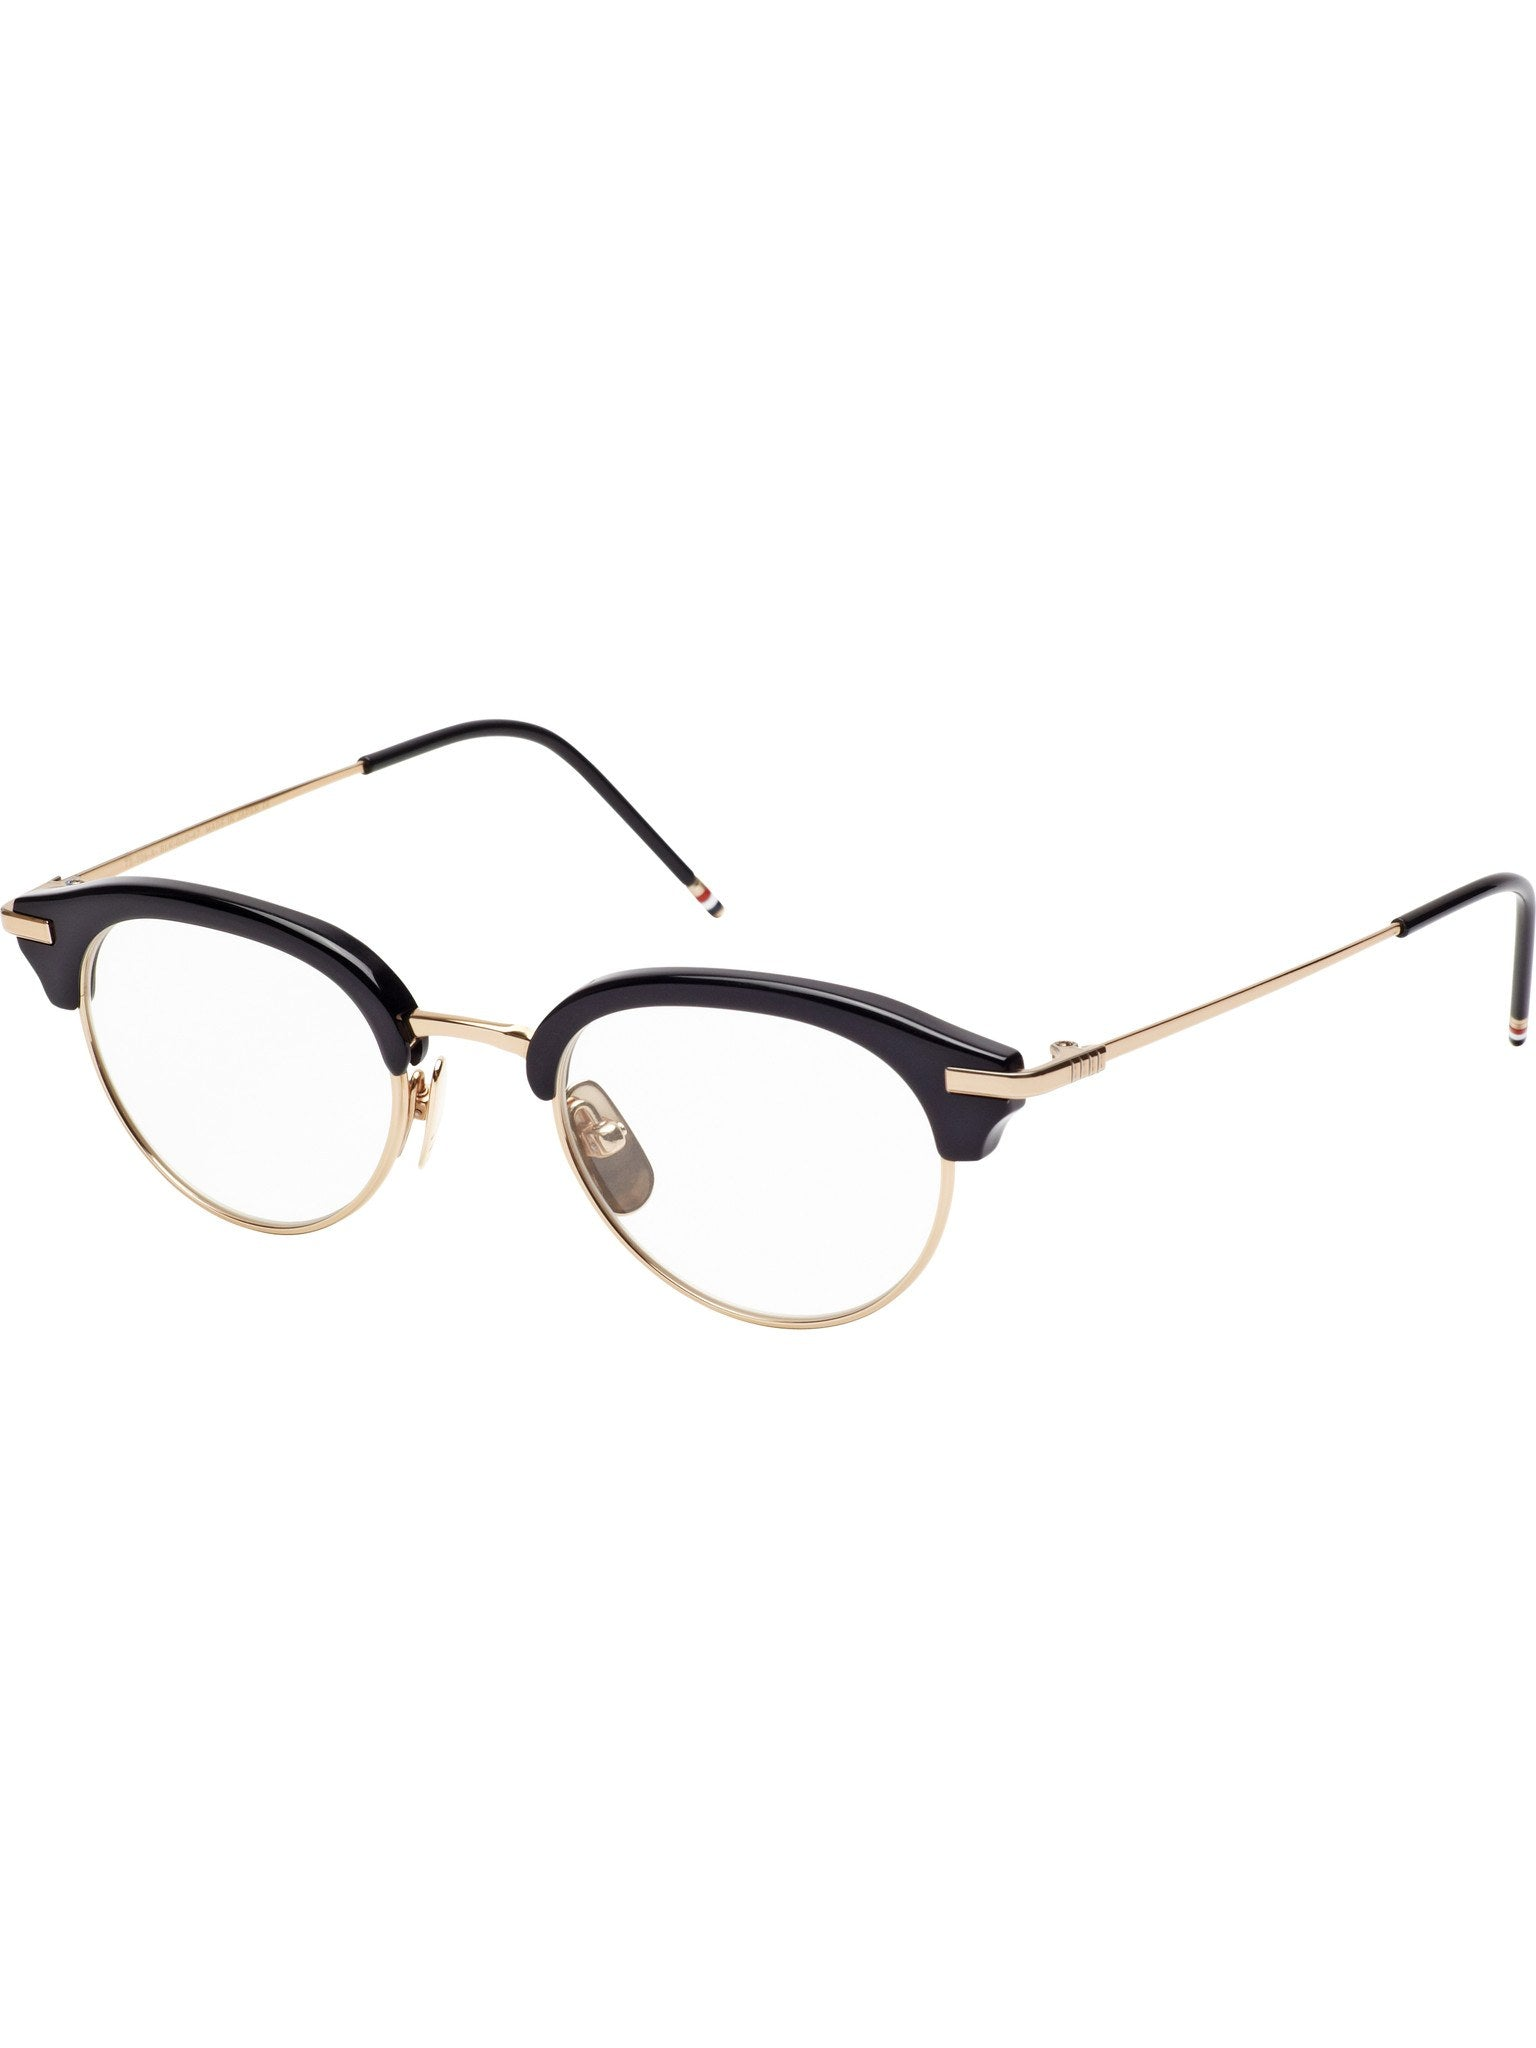 e56b4520938f Optical Frame - Thom Browne TB-706-B Glasses